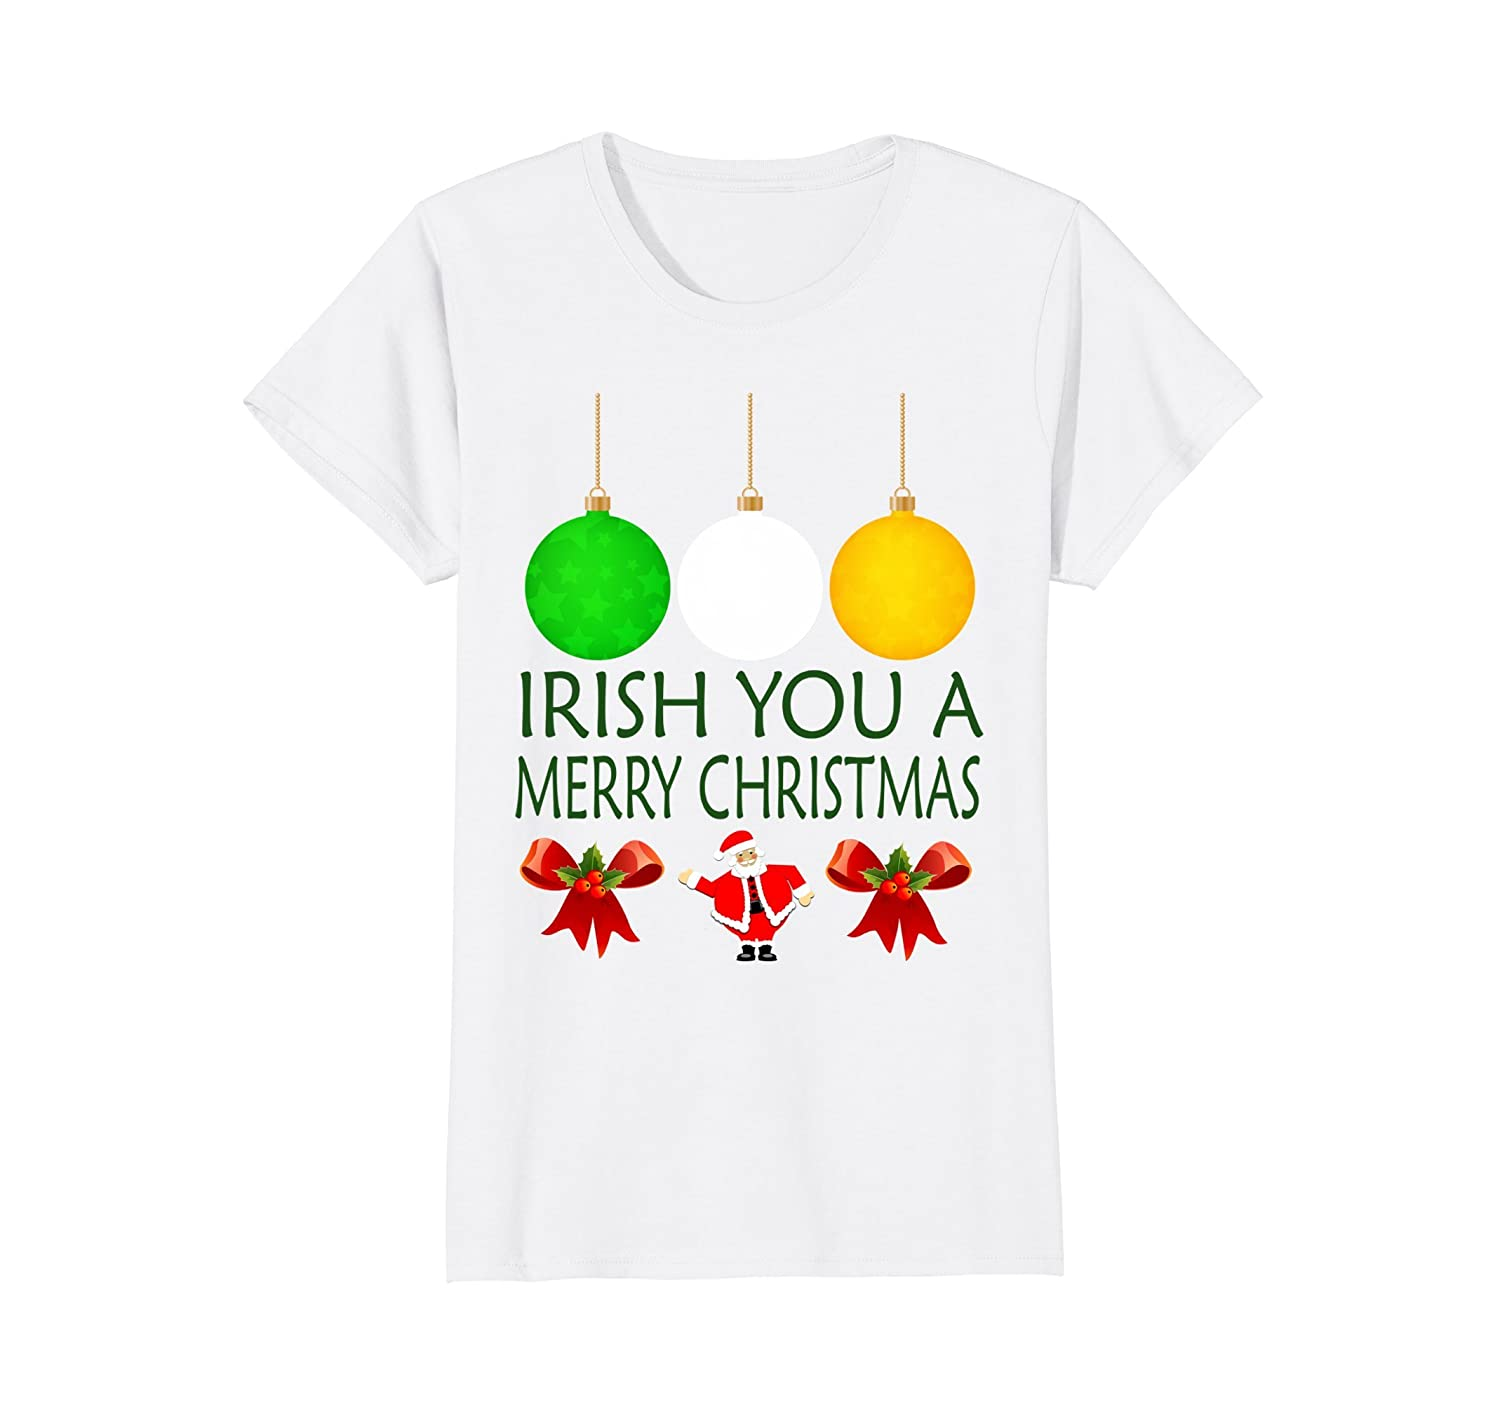 Amazon.com: Irish You A Merry Christmas Funny Ireland T-Shirt: Clothing